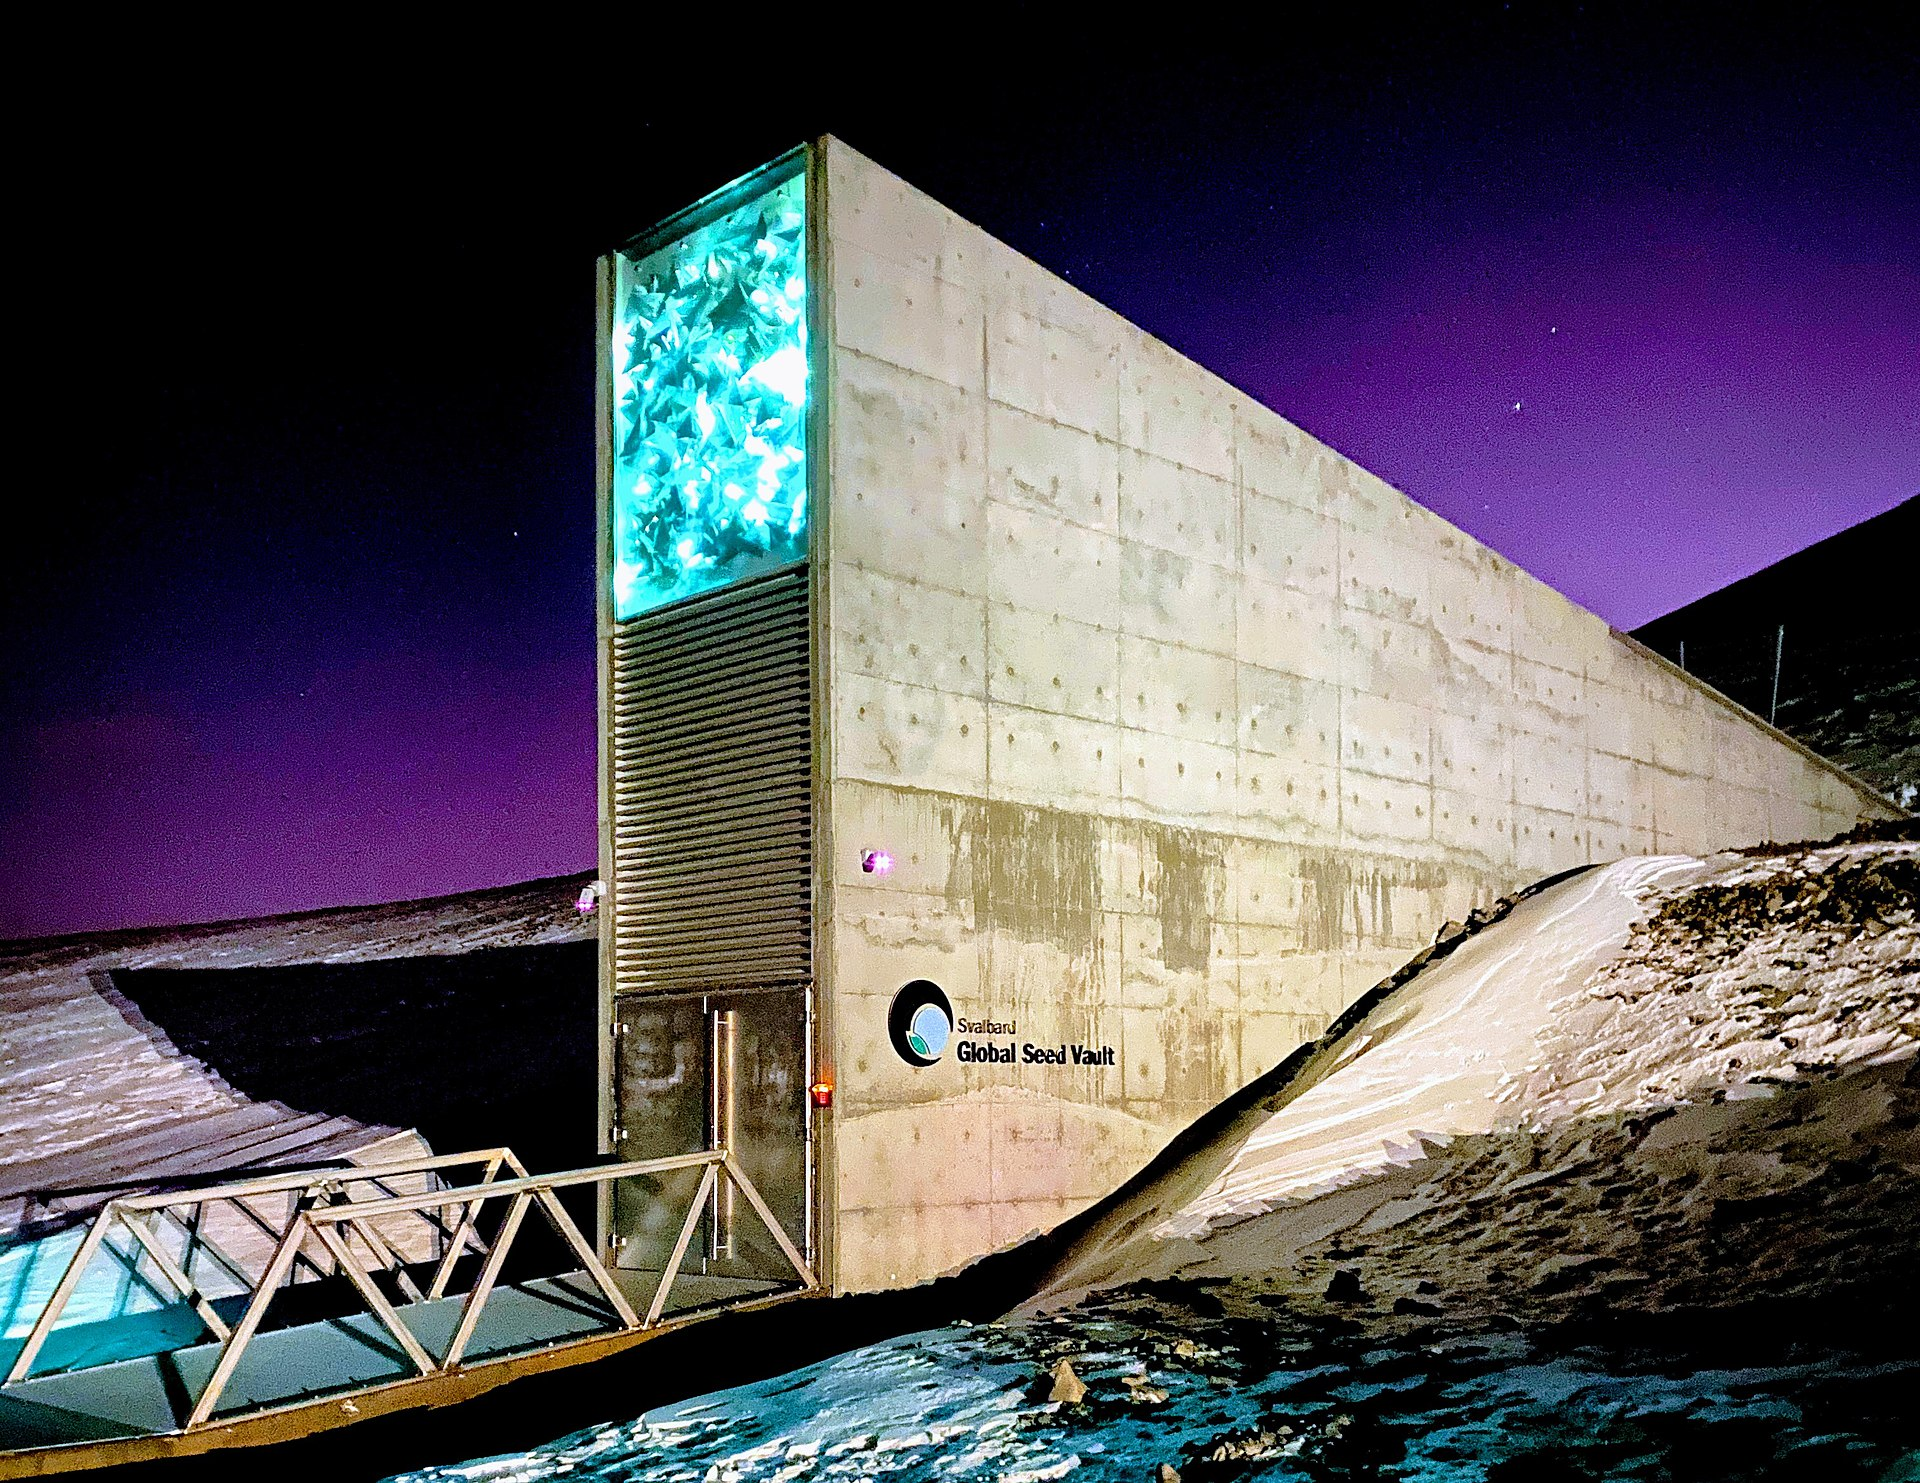 The entrance to the Svalbard Global Seed Vault in Svalbard, Norway, a remote archipelago in the Arctic Ocean. Photo by Subiet via Wikimedia Commons (CC BY-SA 4.0).